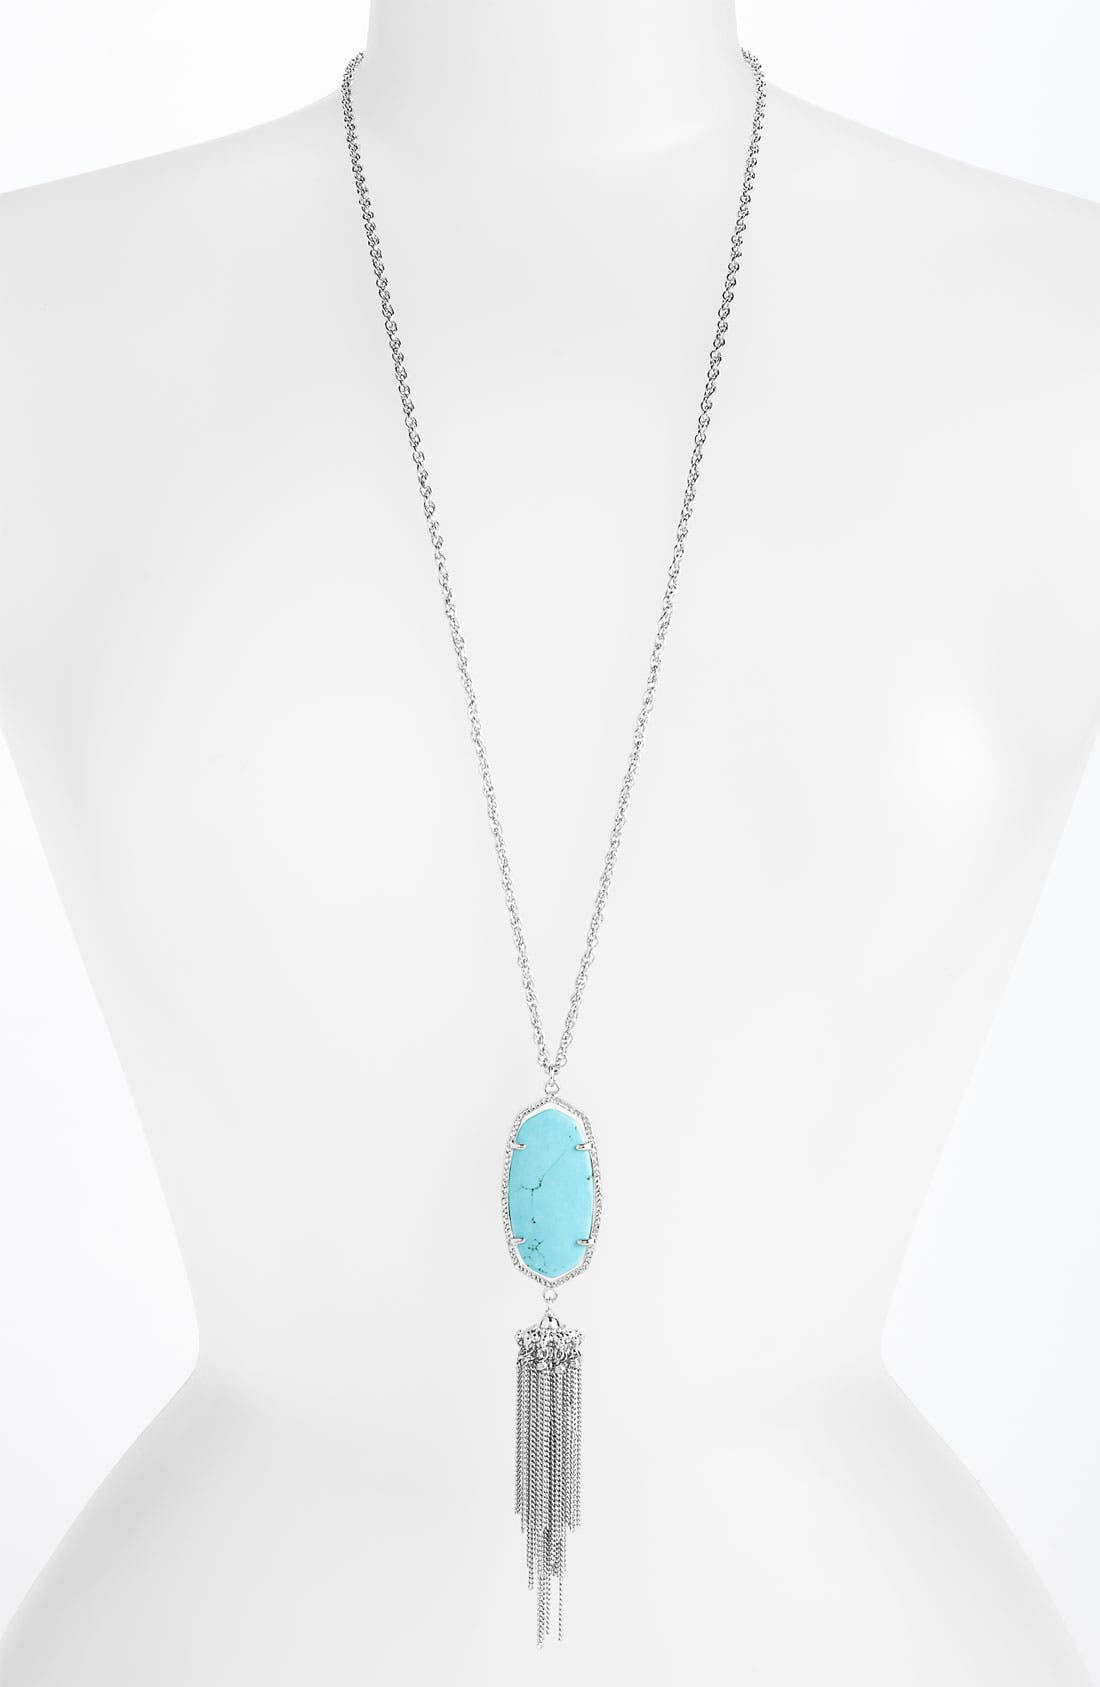 Alternate Image 1 Selected - Kendra Scott 'Rayne' Pendant Necklace